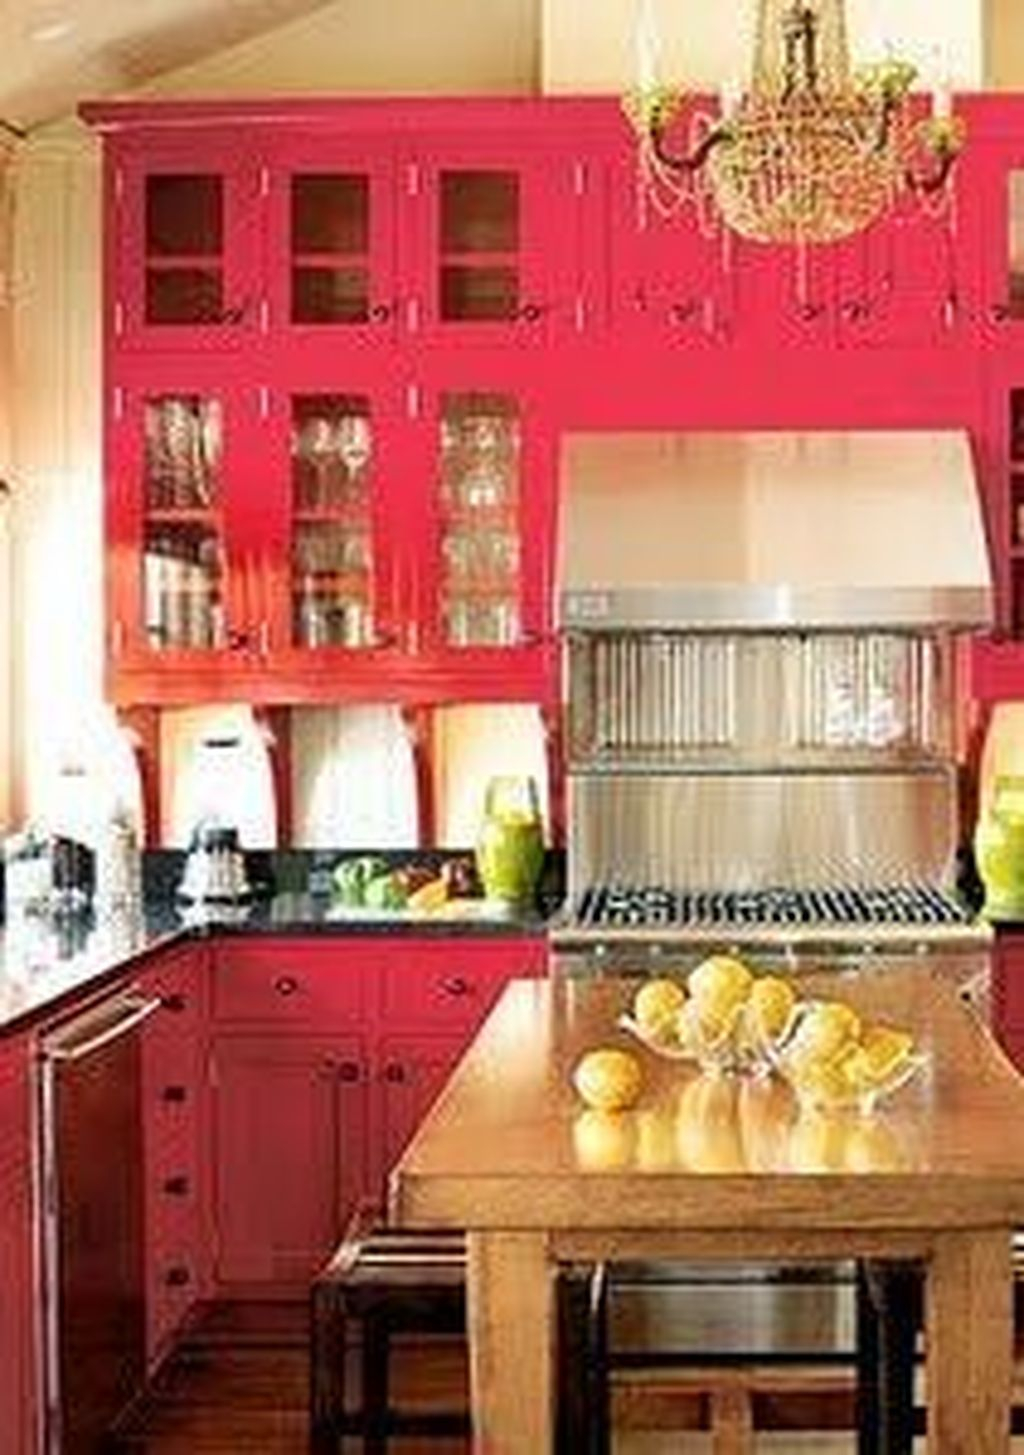 Adorable Rainbow Colorful Kitchens Design Ideas To Looks More Awesome 12